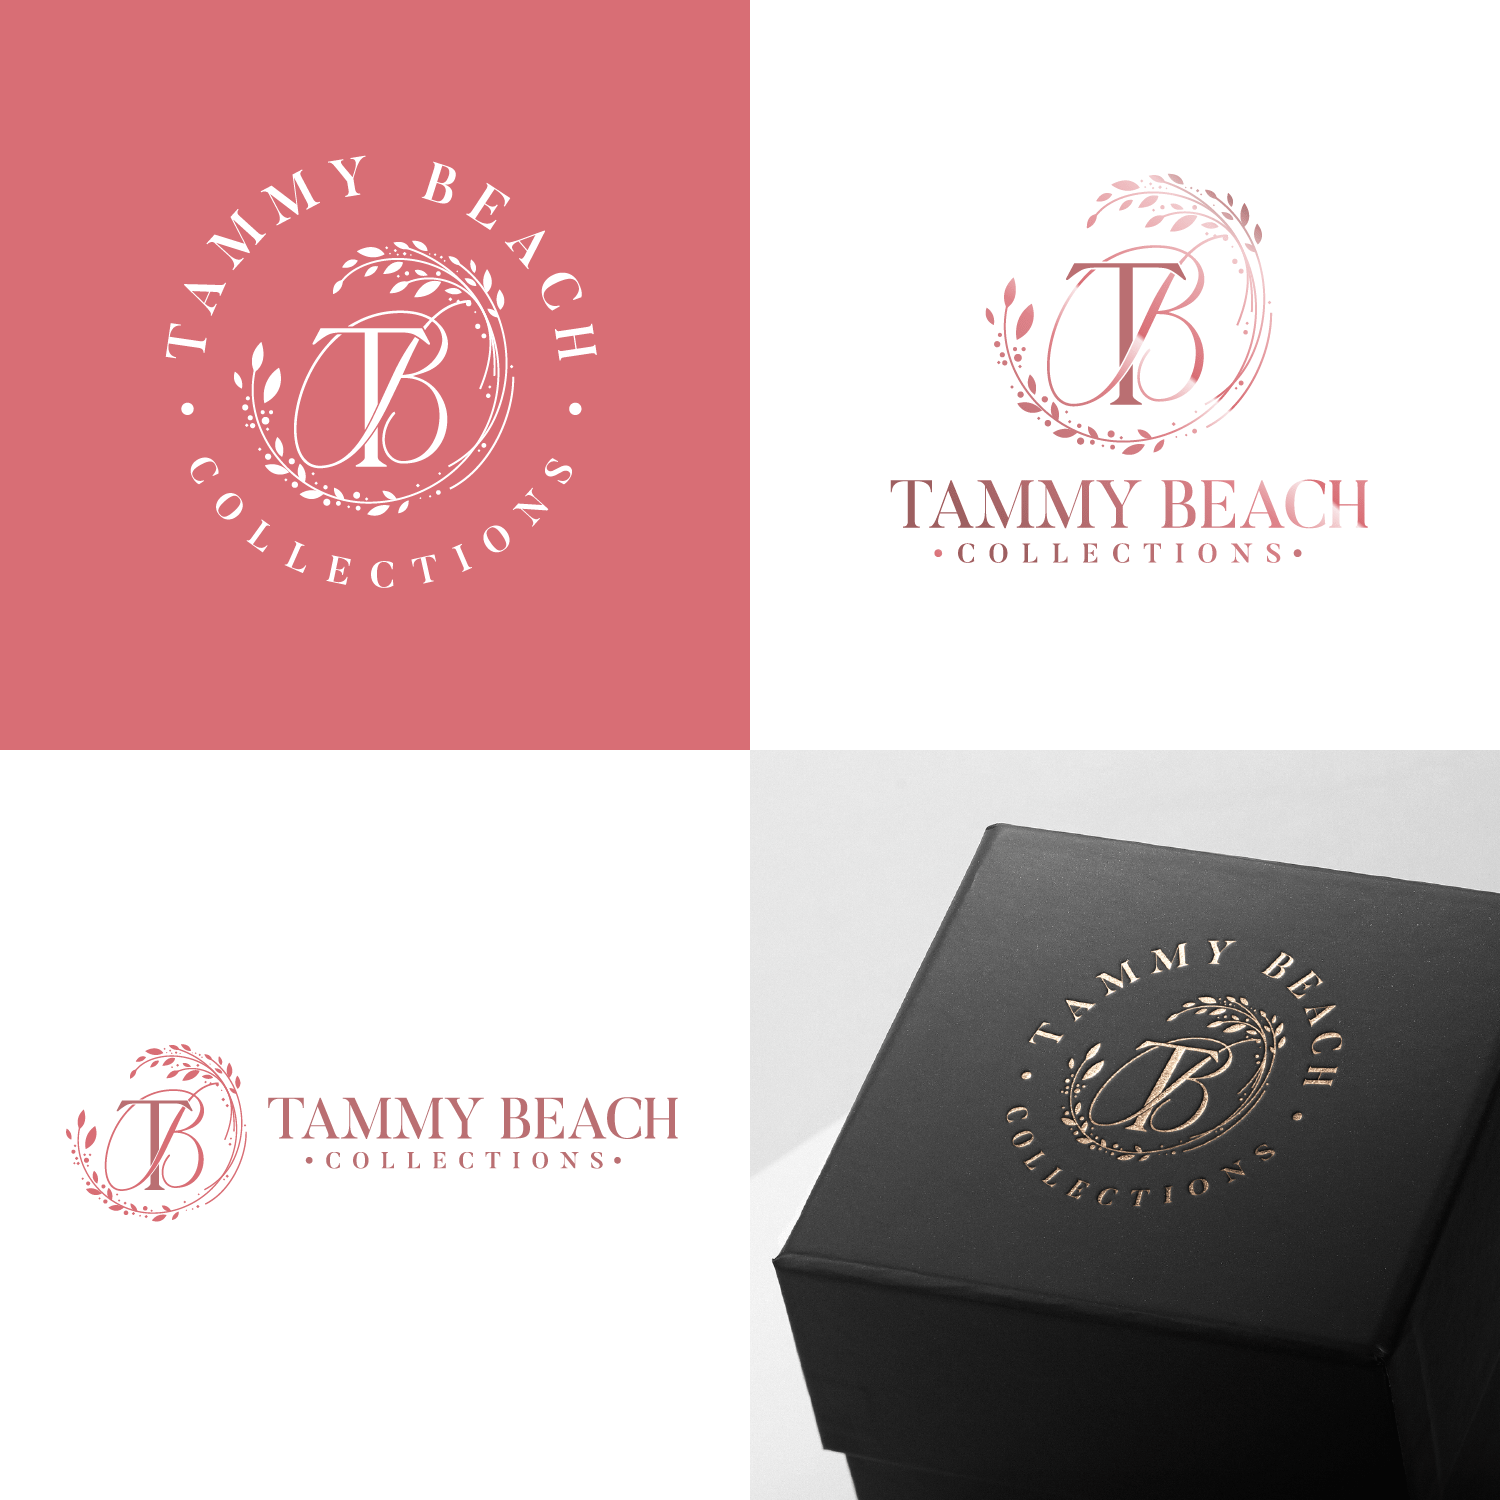 Logo design done for a luxury jewelry collection store